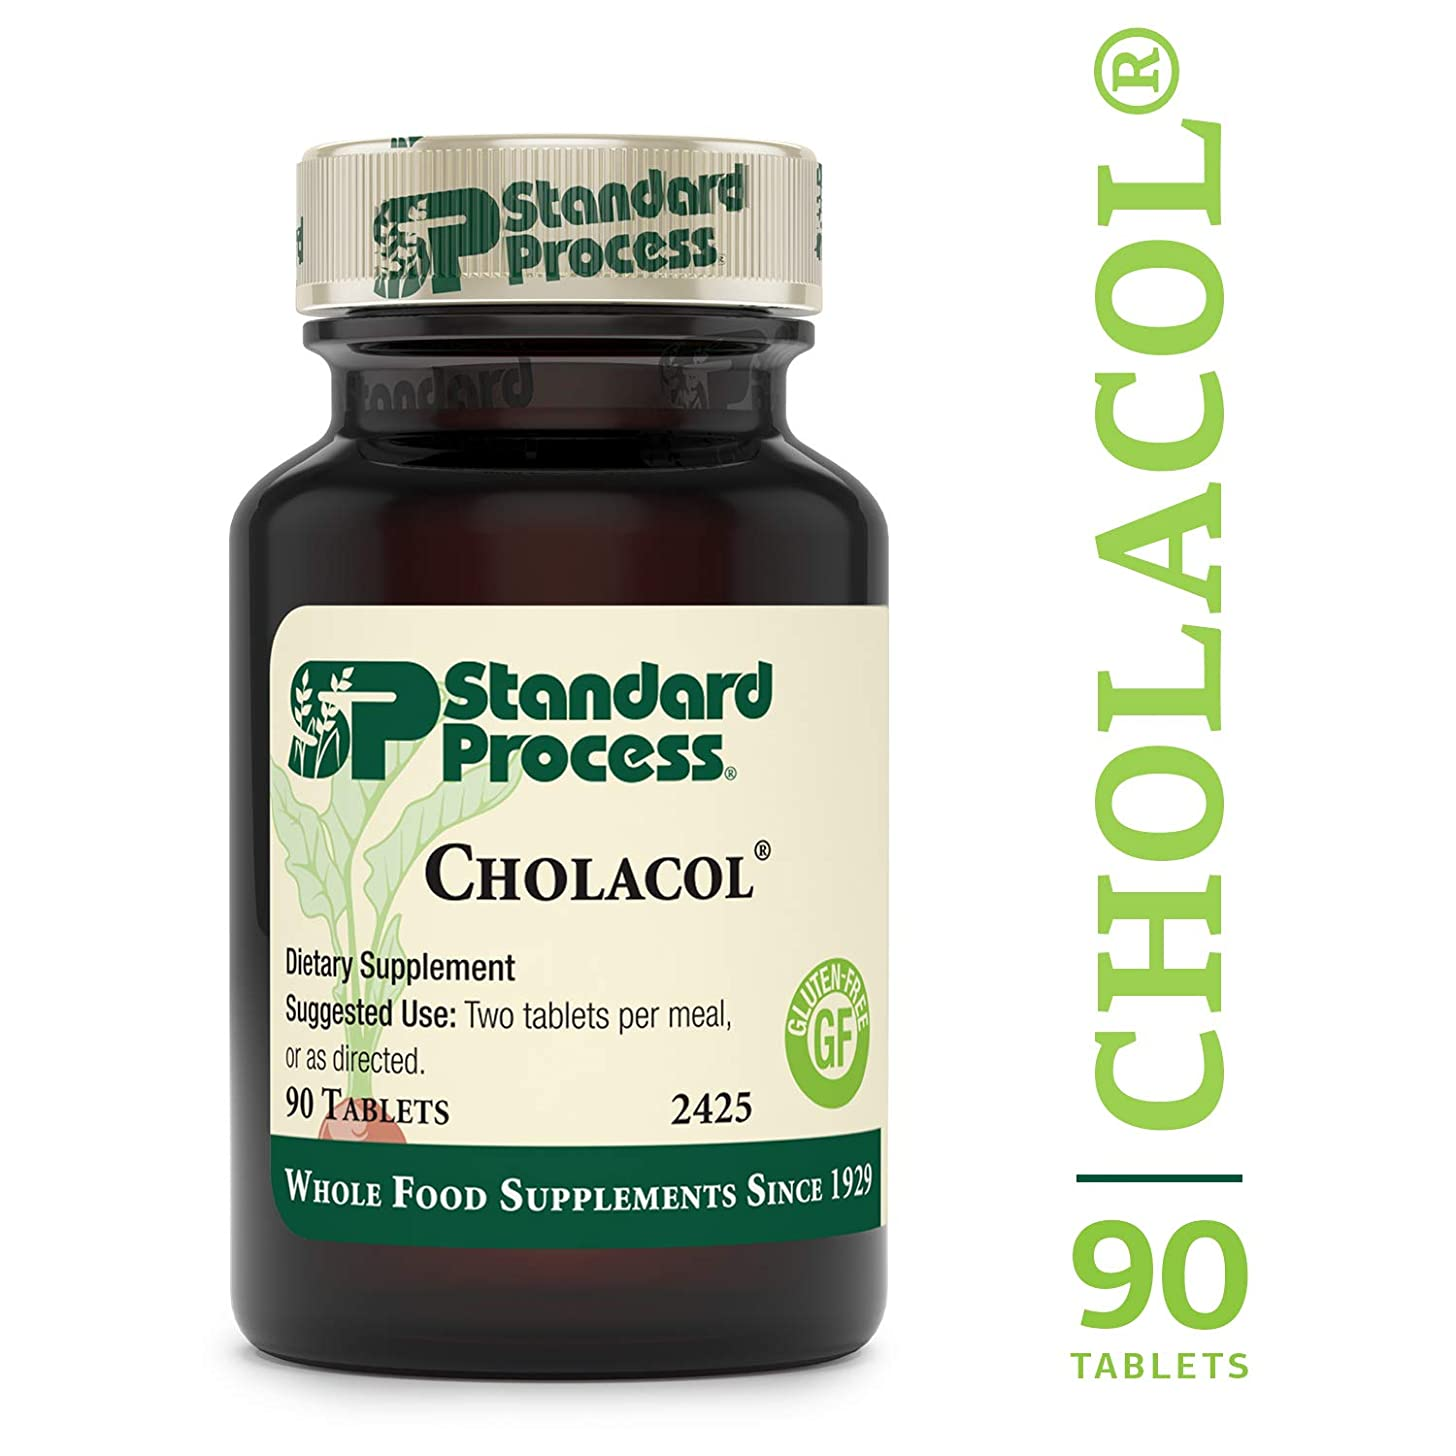 Standard Process - Cholacol - Healthy Fat Digestion Support Supplement, Provides Iron, Collinsonia, and Bile Salts, Gluten Free - 90 Tablets